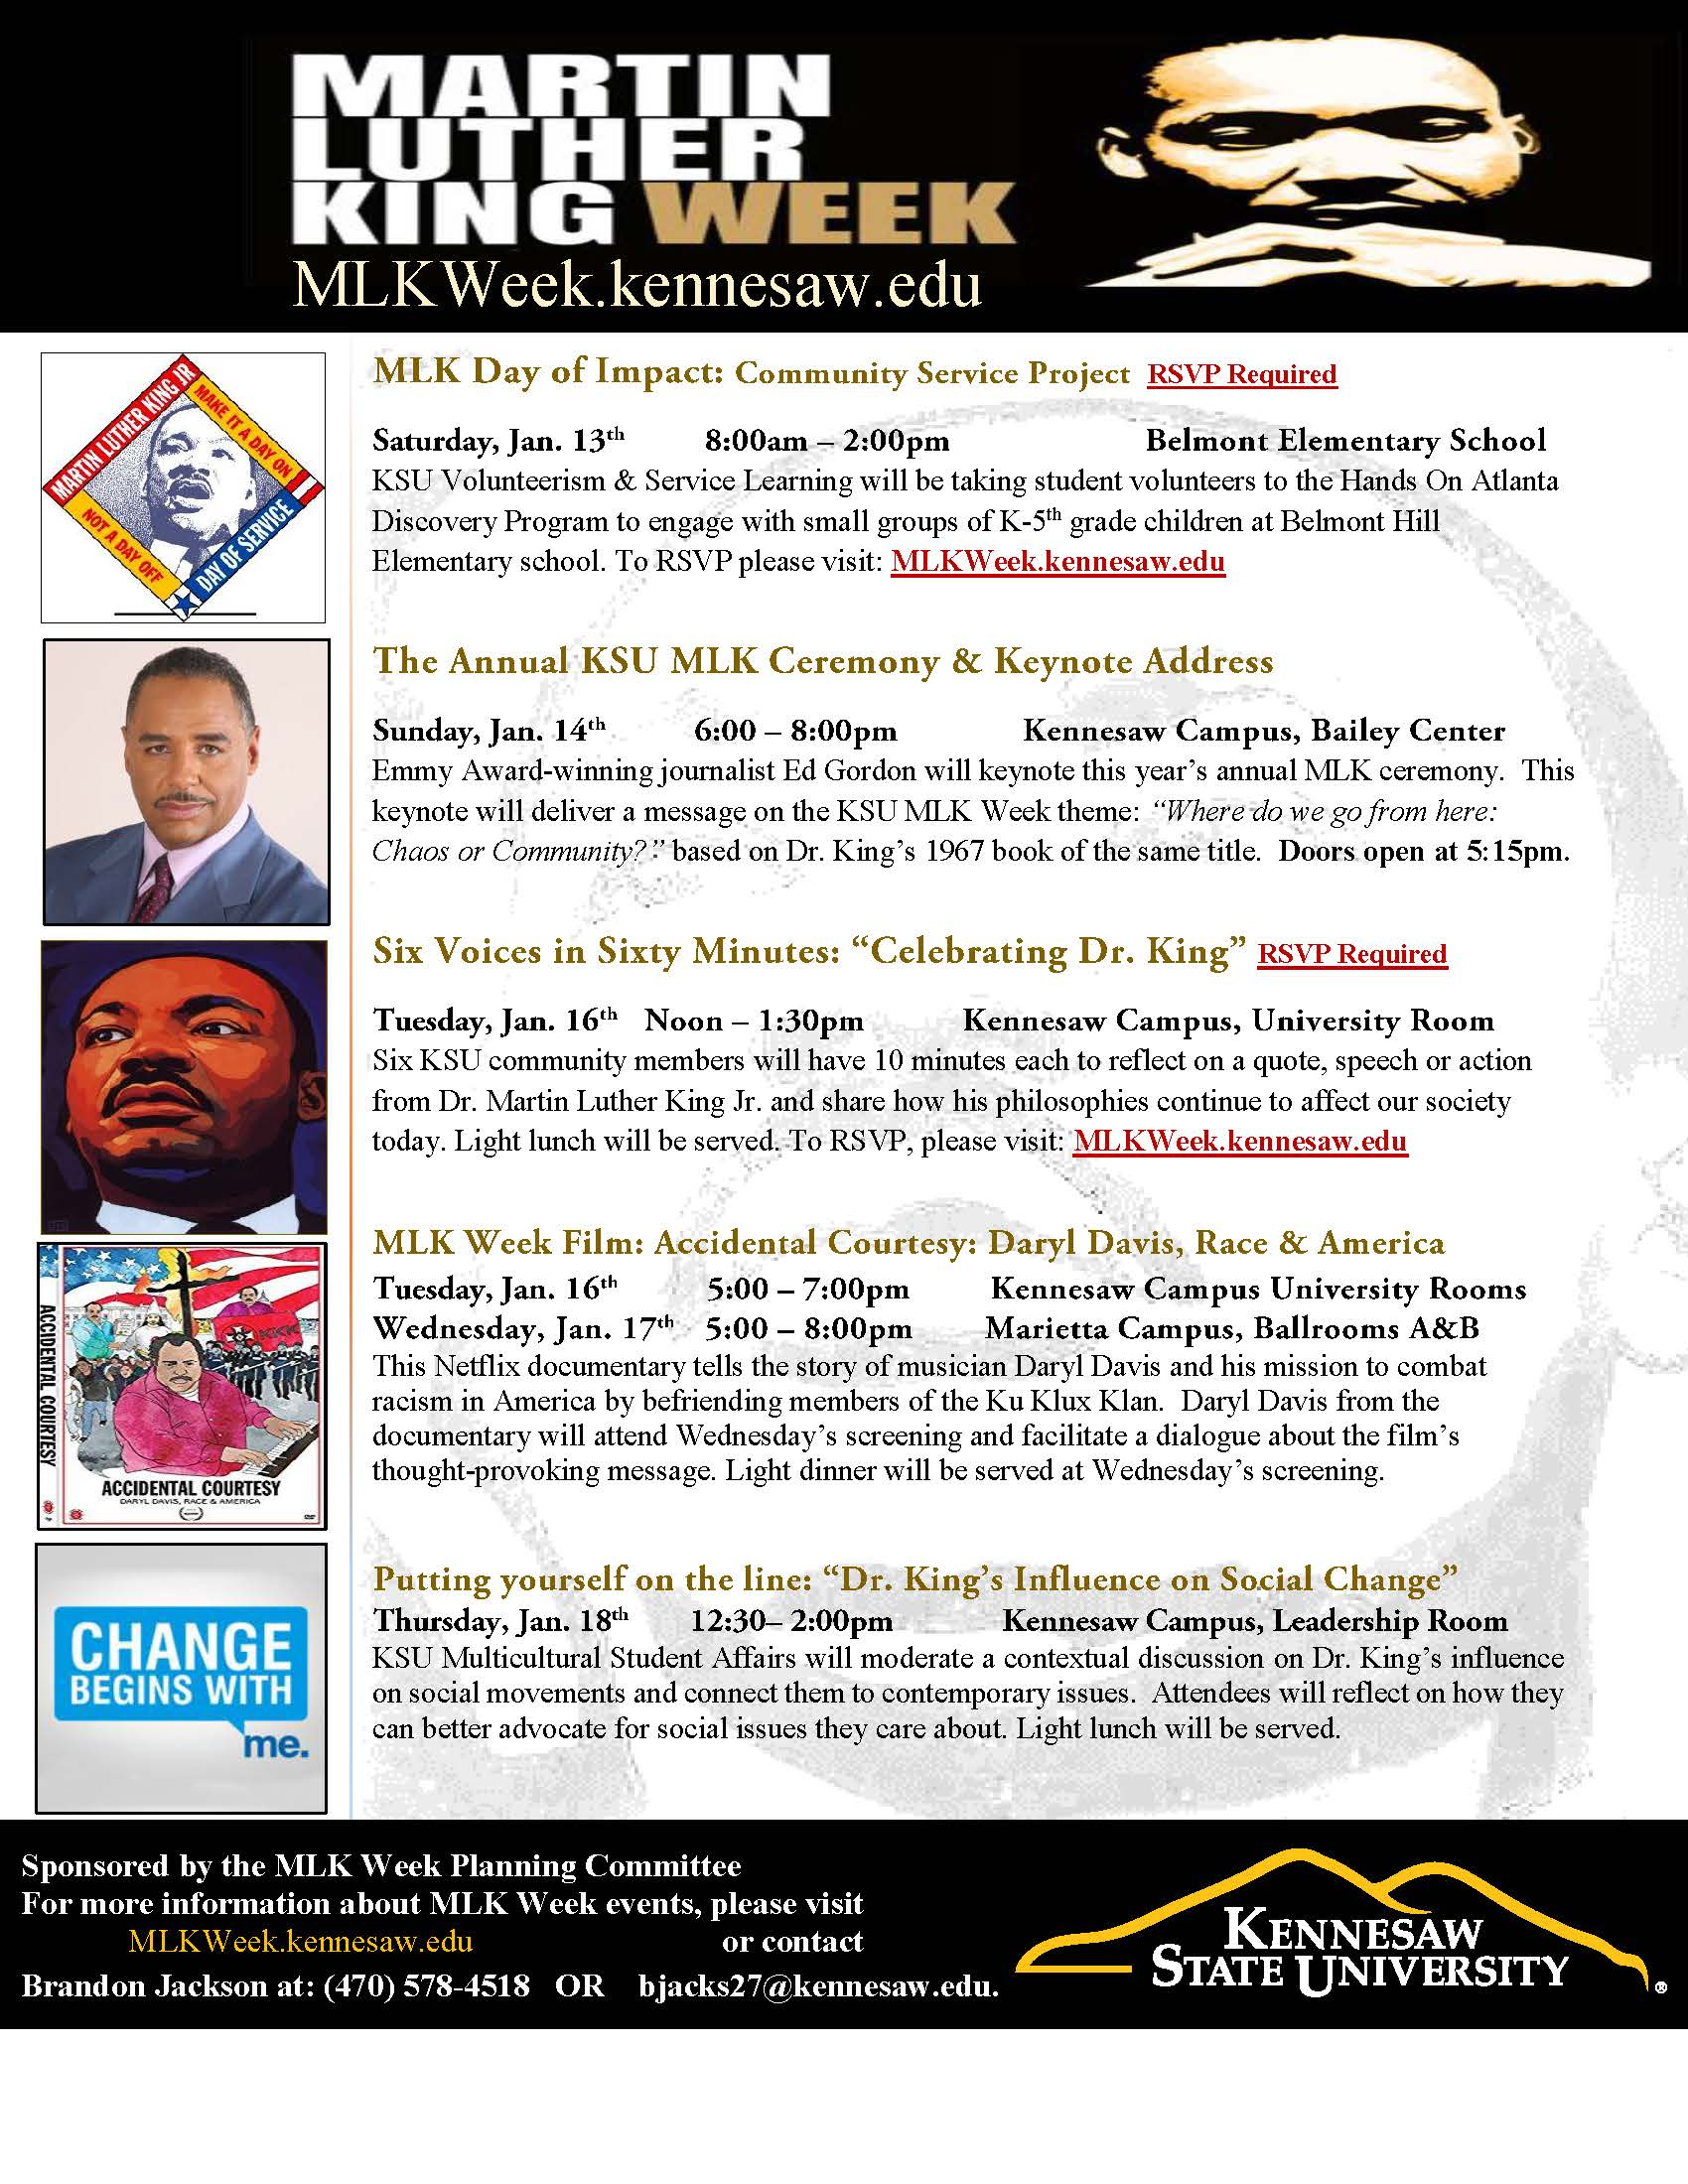 Kennesaw State Academic Calendar >> Martin Luther King Jr Week 2018 Office Of Diversity And